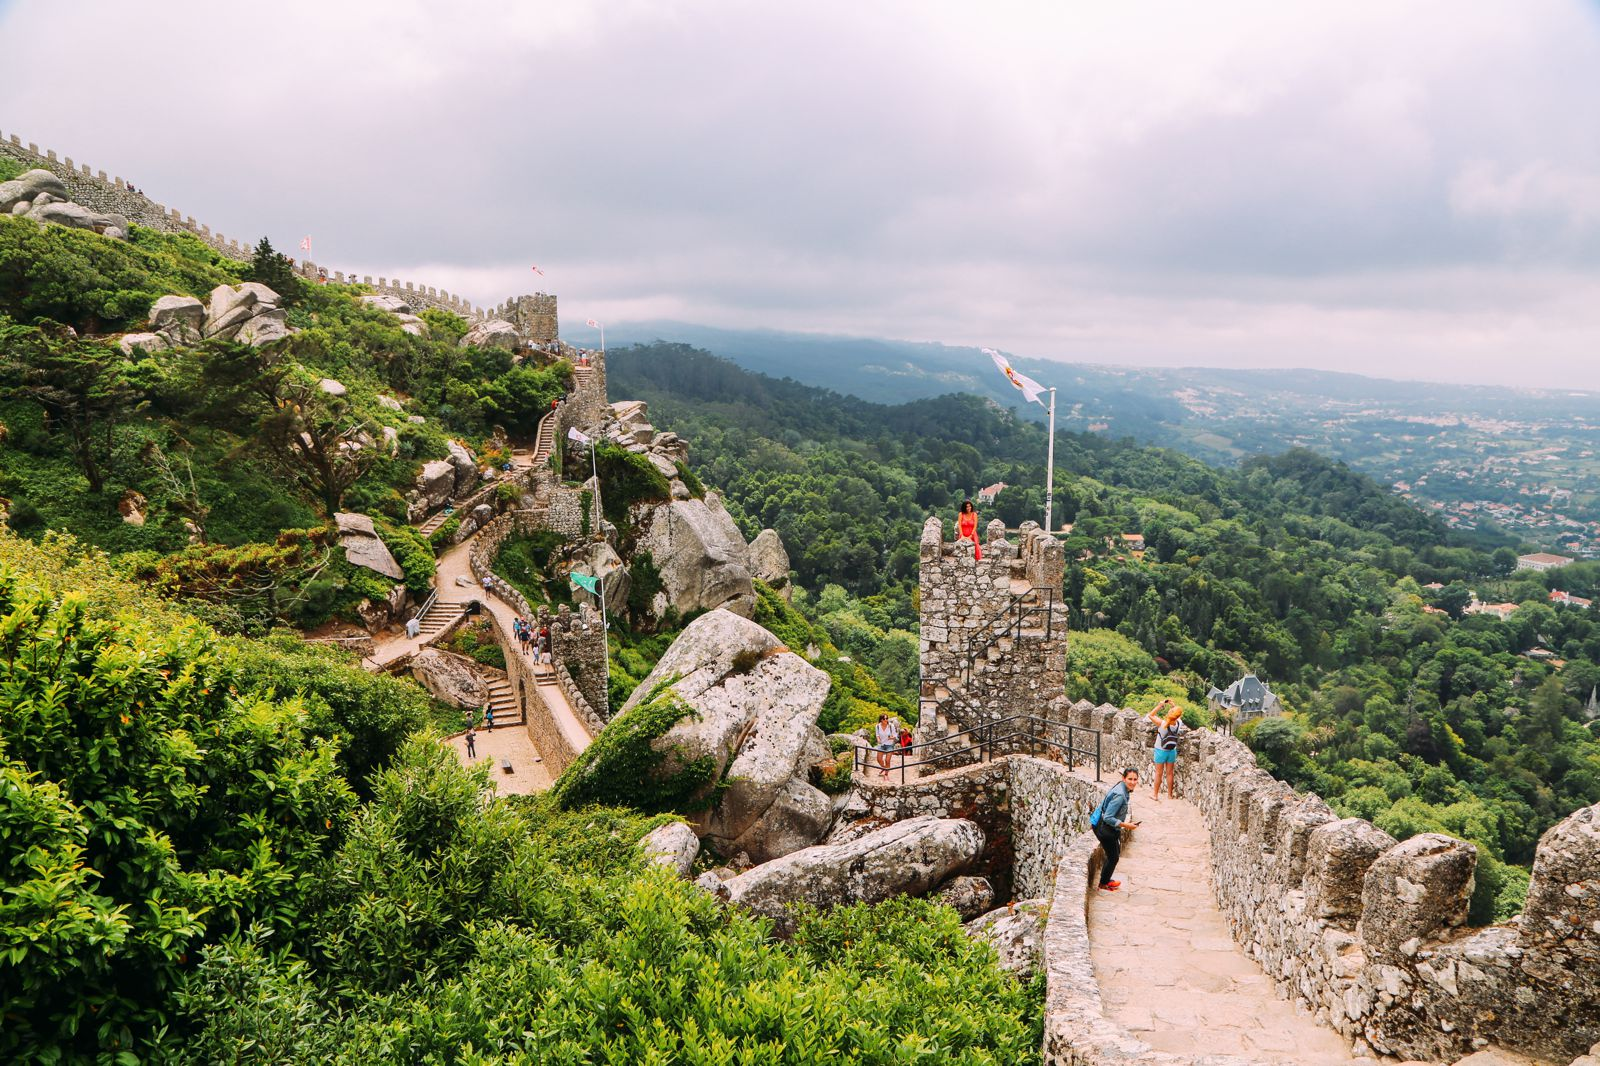 The Moorish Castle, Palace of Sintra And Pena Park – 3 Beautiful Places To See In Sintra, Portugal (12)